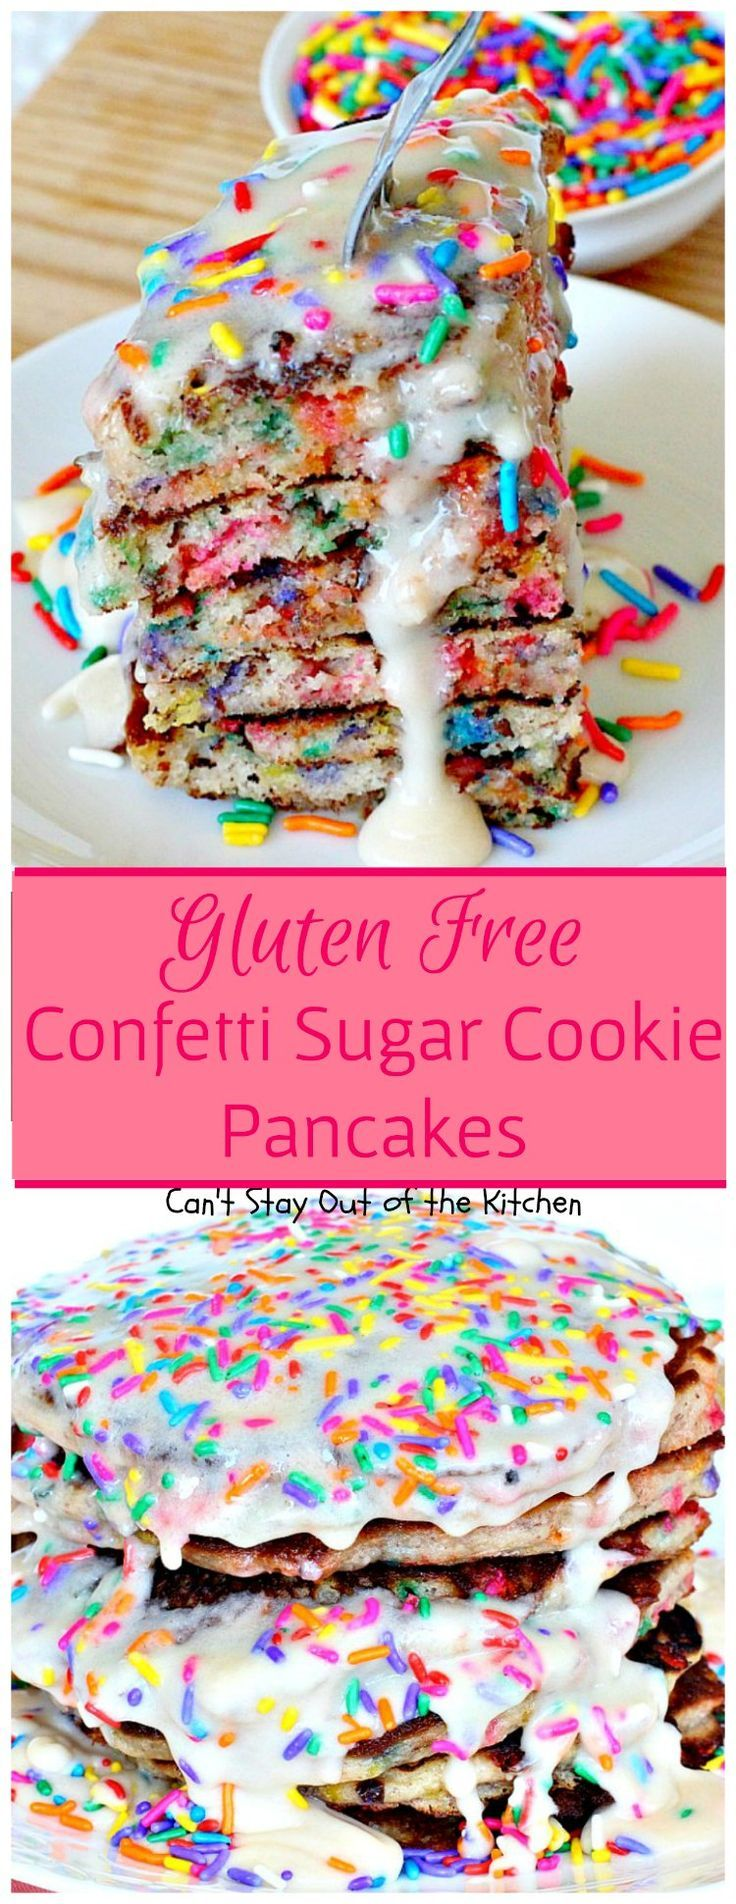 Gluten Free Confetti Sugar Cookie Pancakes | Can't Stay Out of the Kitchen…